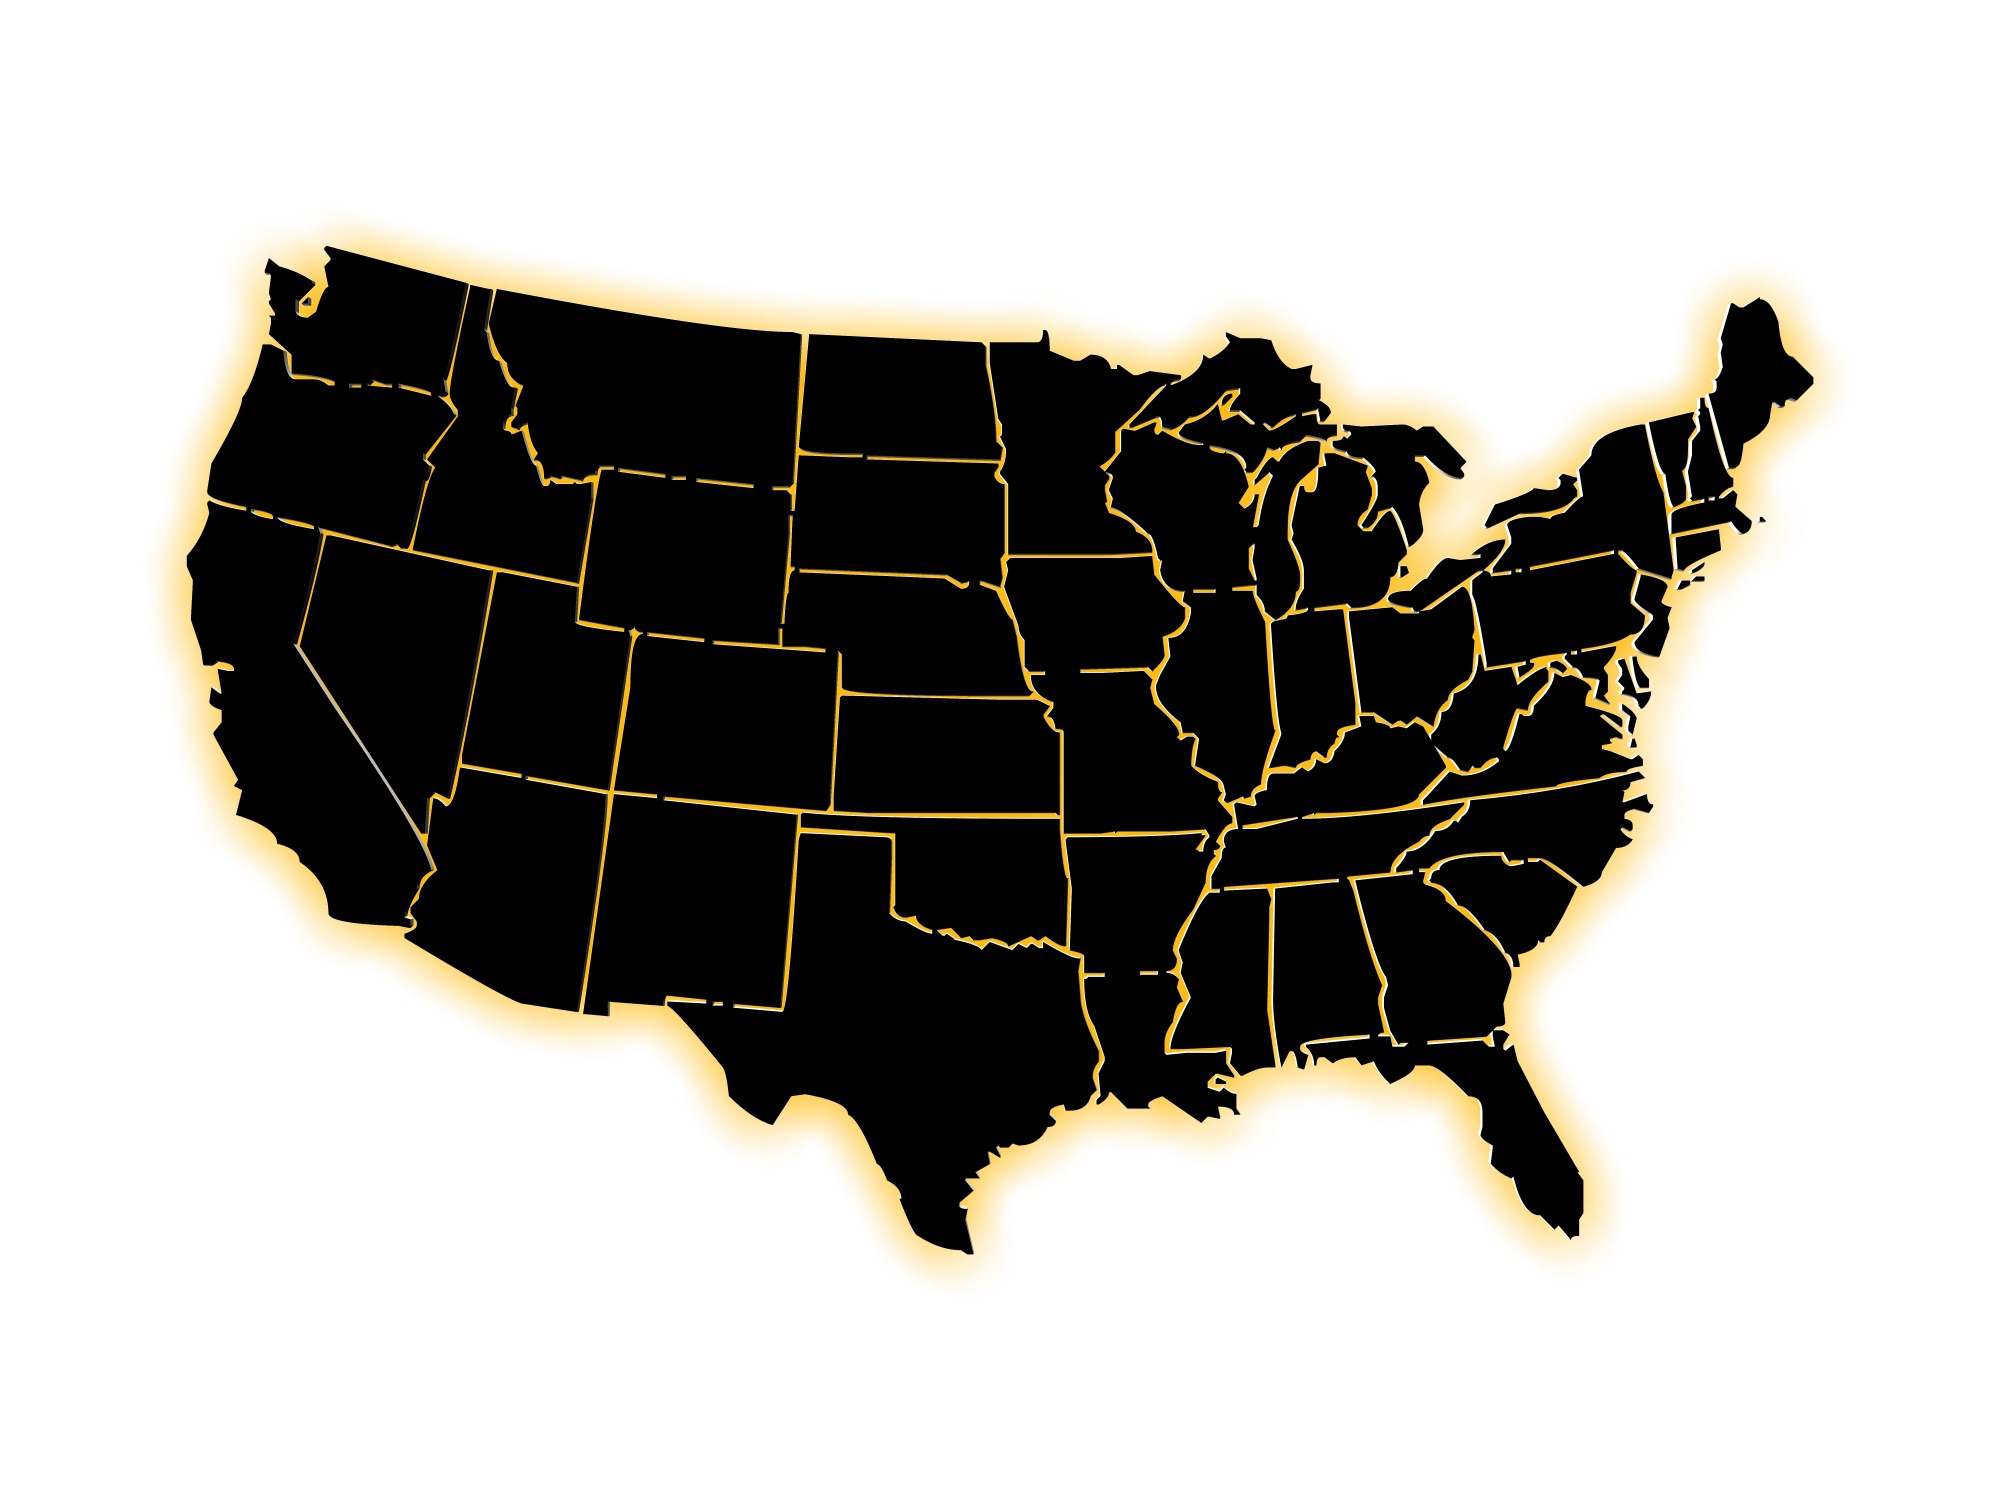 Black US map, divided states